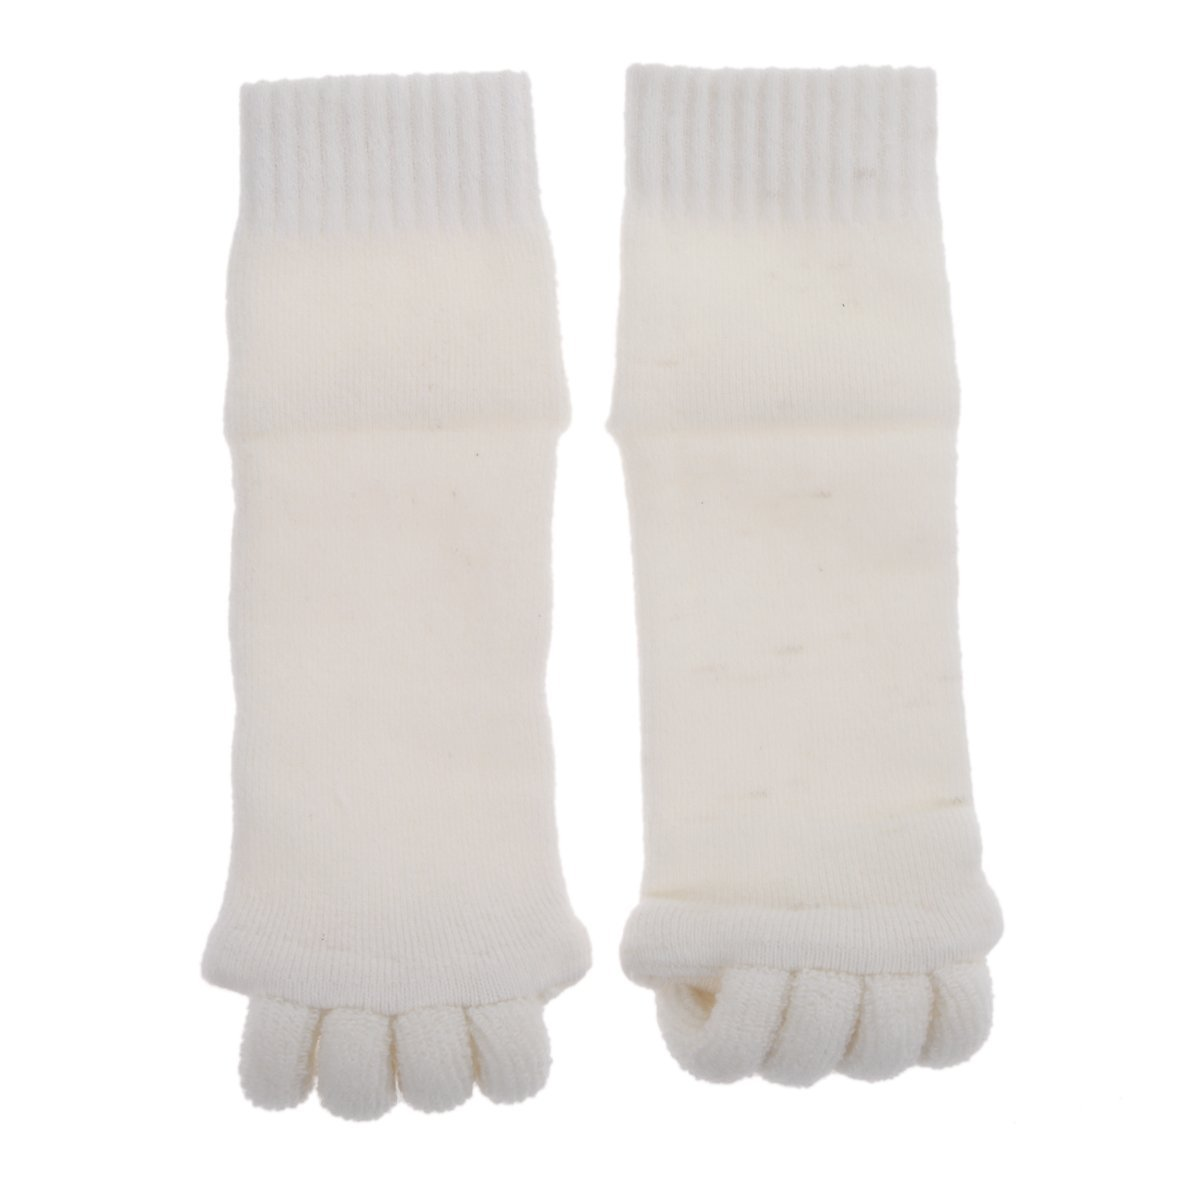 b36b9fa5686 Easydeal 1 Pair Yoga GYM Massage Five Toe Separator Socks Foot Alignment  Pain Relief(White